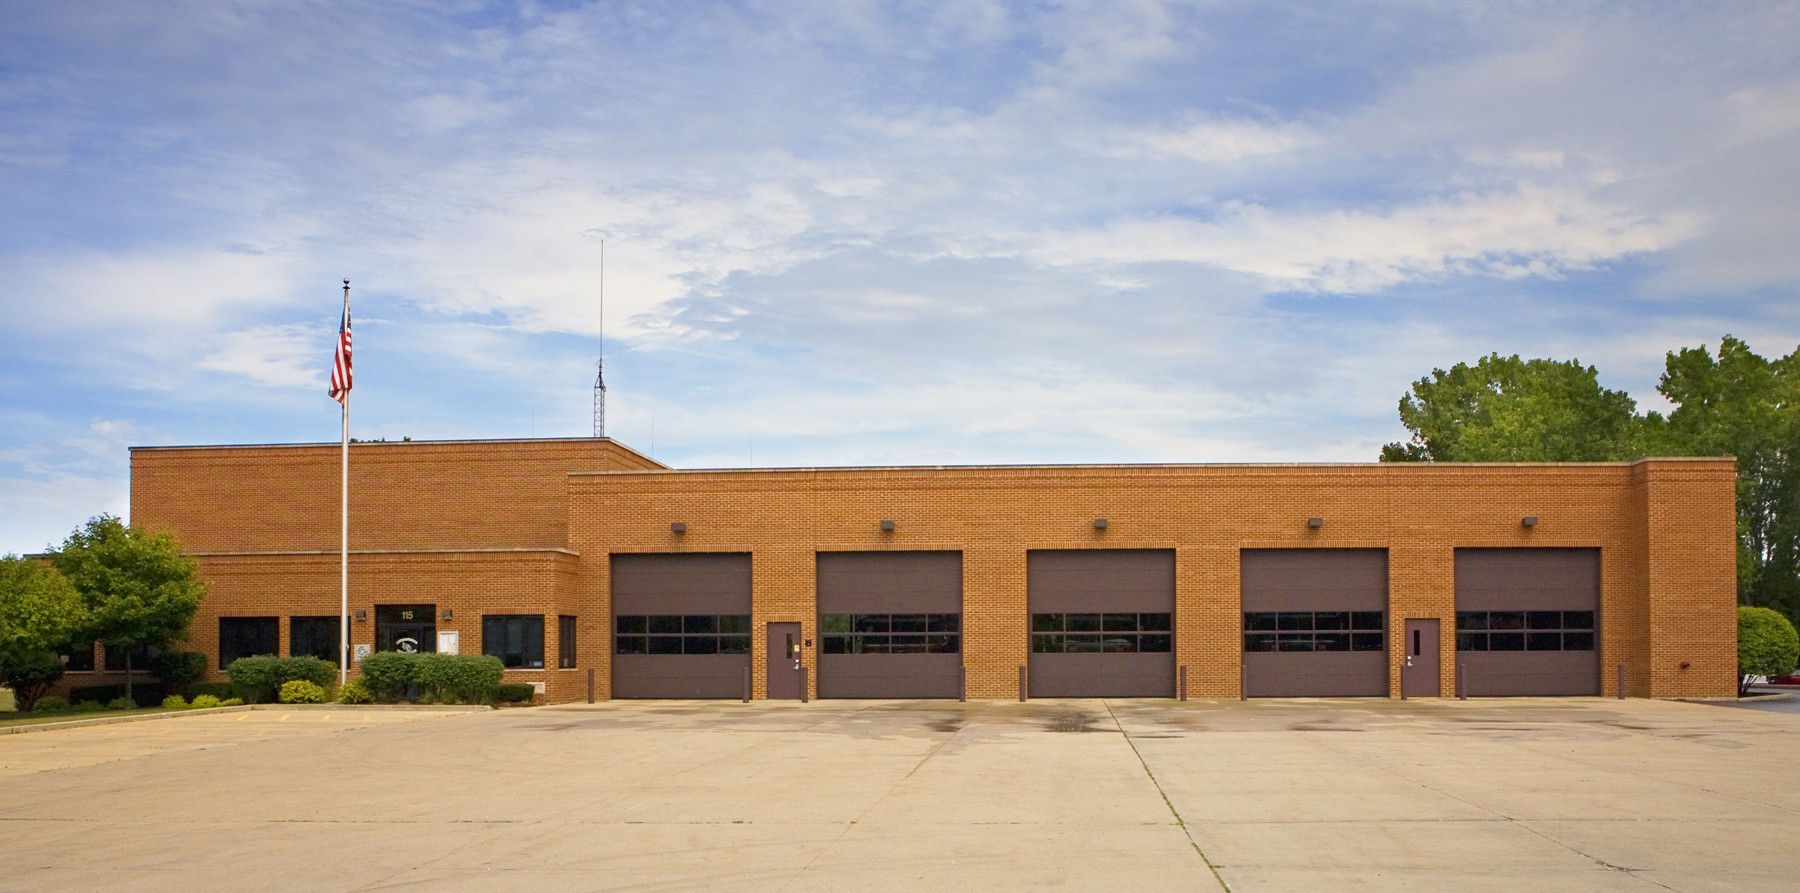 Lincolnshire Riverwoods FPD Station 51